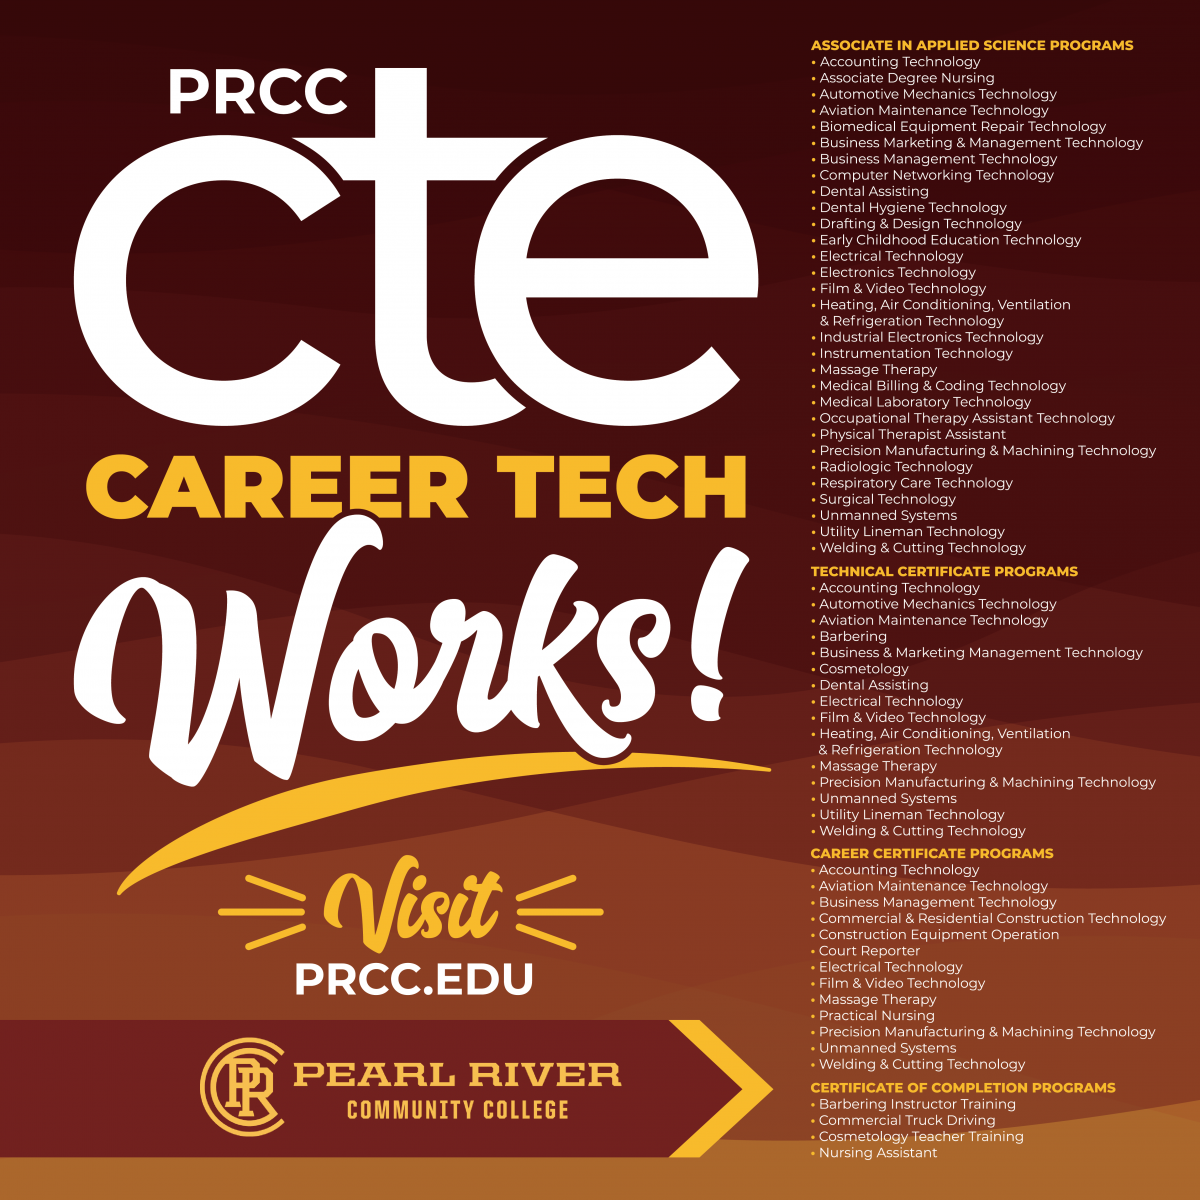 List of all Career Tech Programs at PRCC as of July 2021